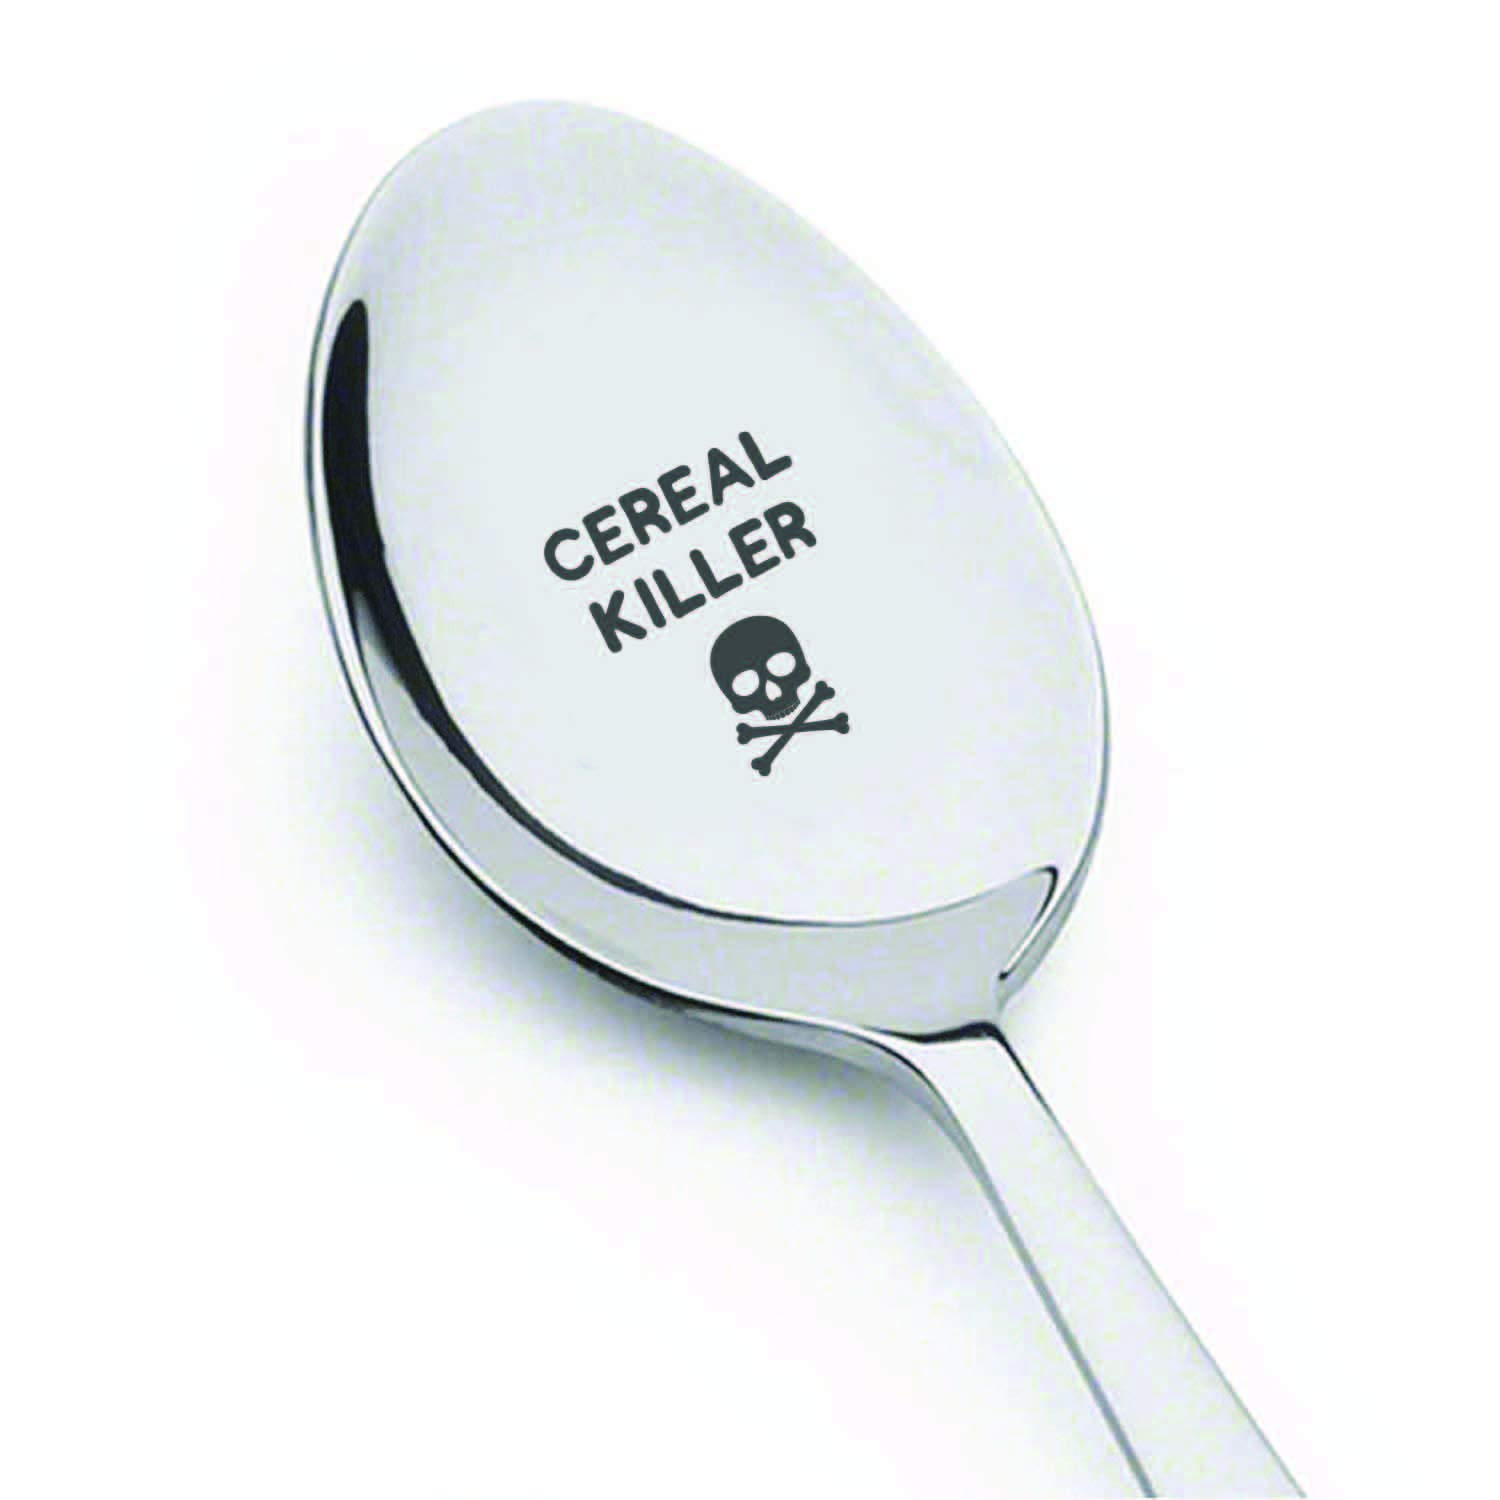 Boston Creative Company Cereal Killer Spoon by Boston Creative company